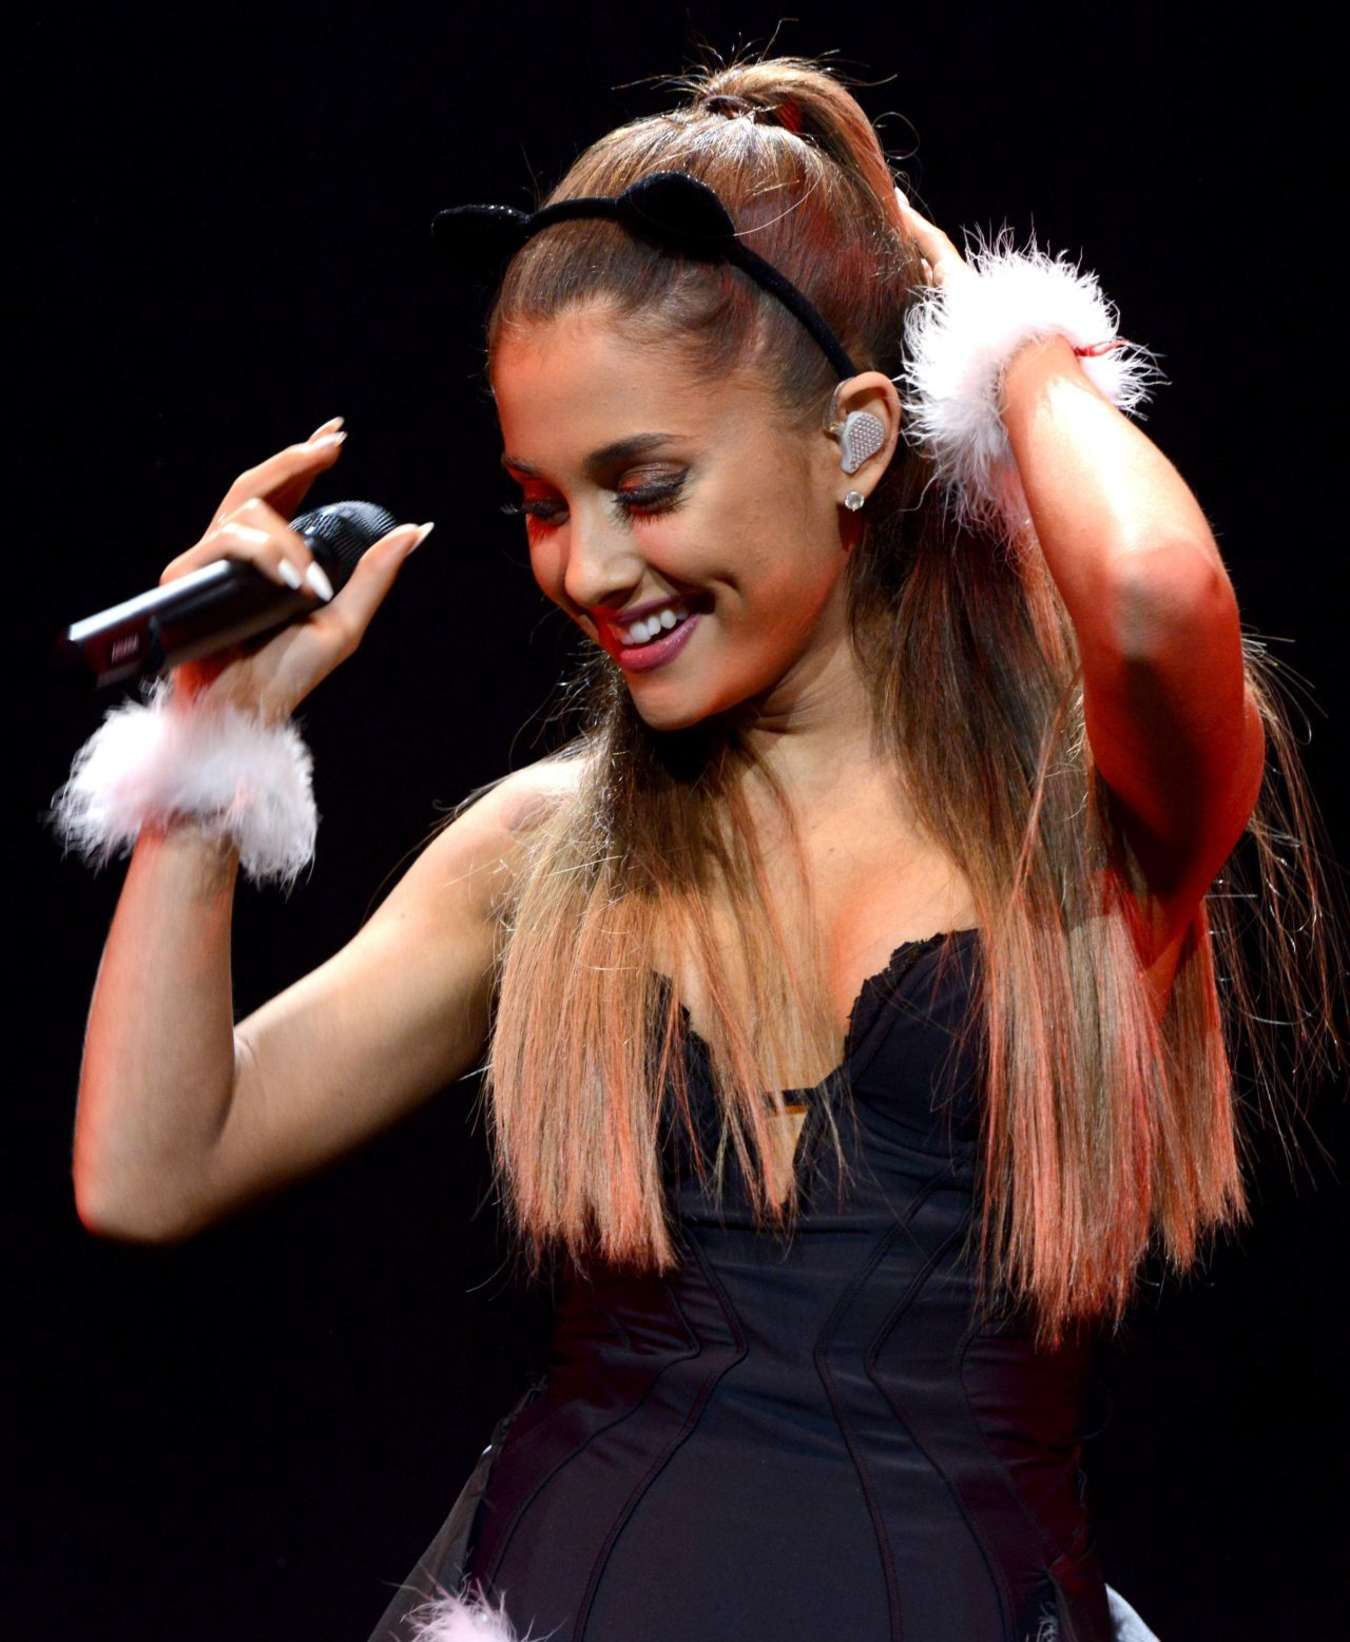 Ariana Grande Performs at HOT 99.5s Jingle Ball 2014 in